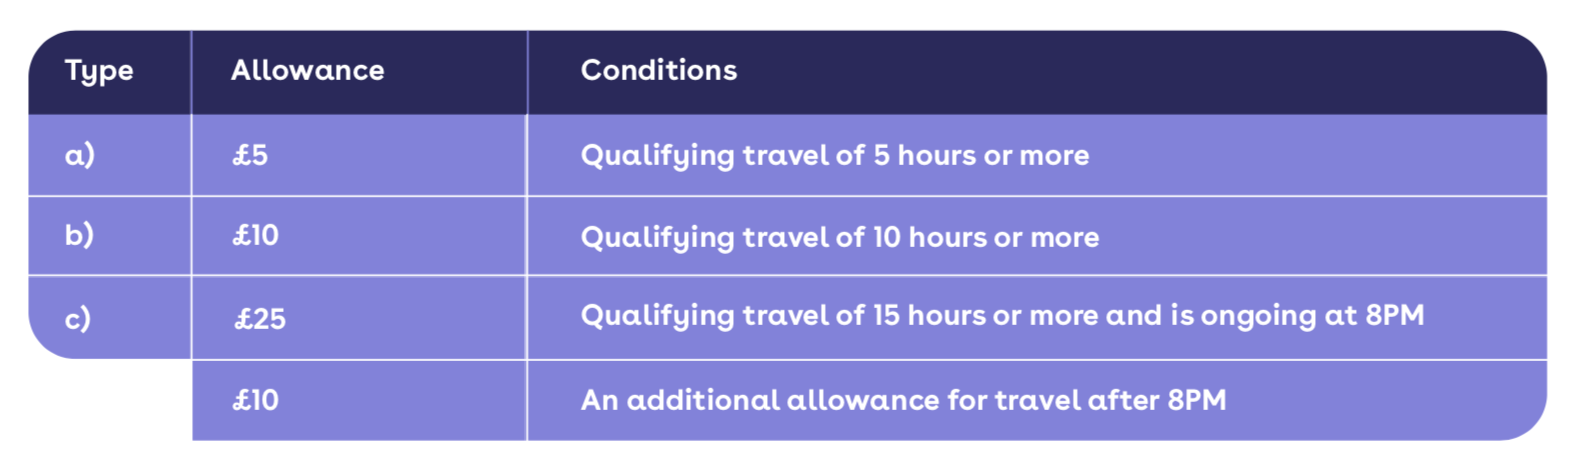 What is a Travel and Expense Policy and why does it matter?